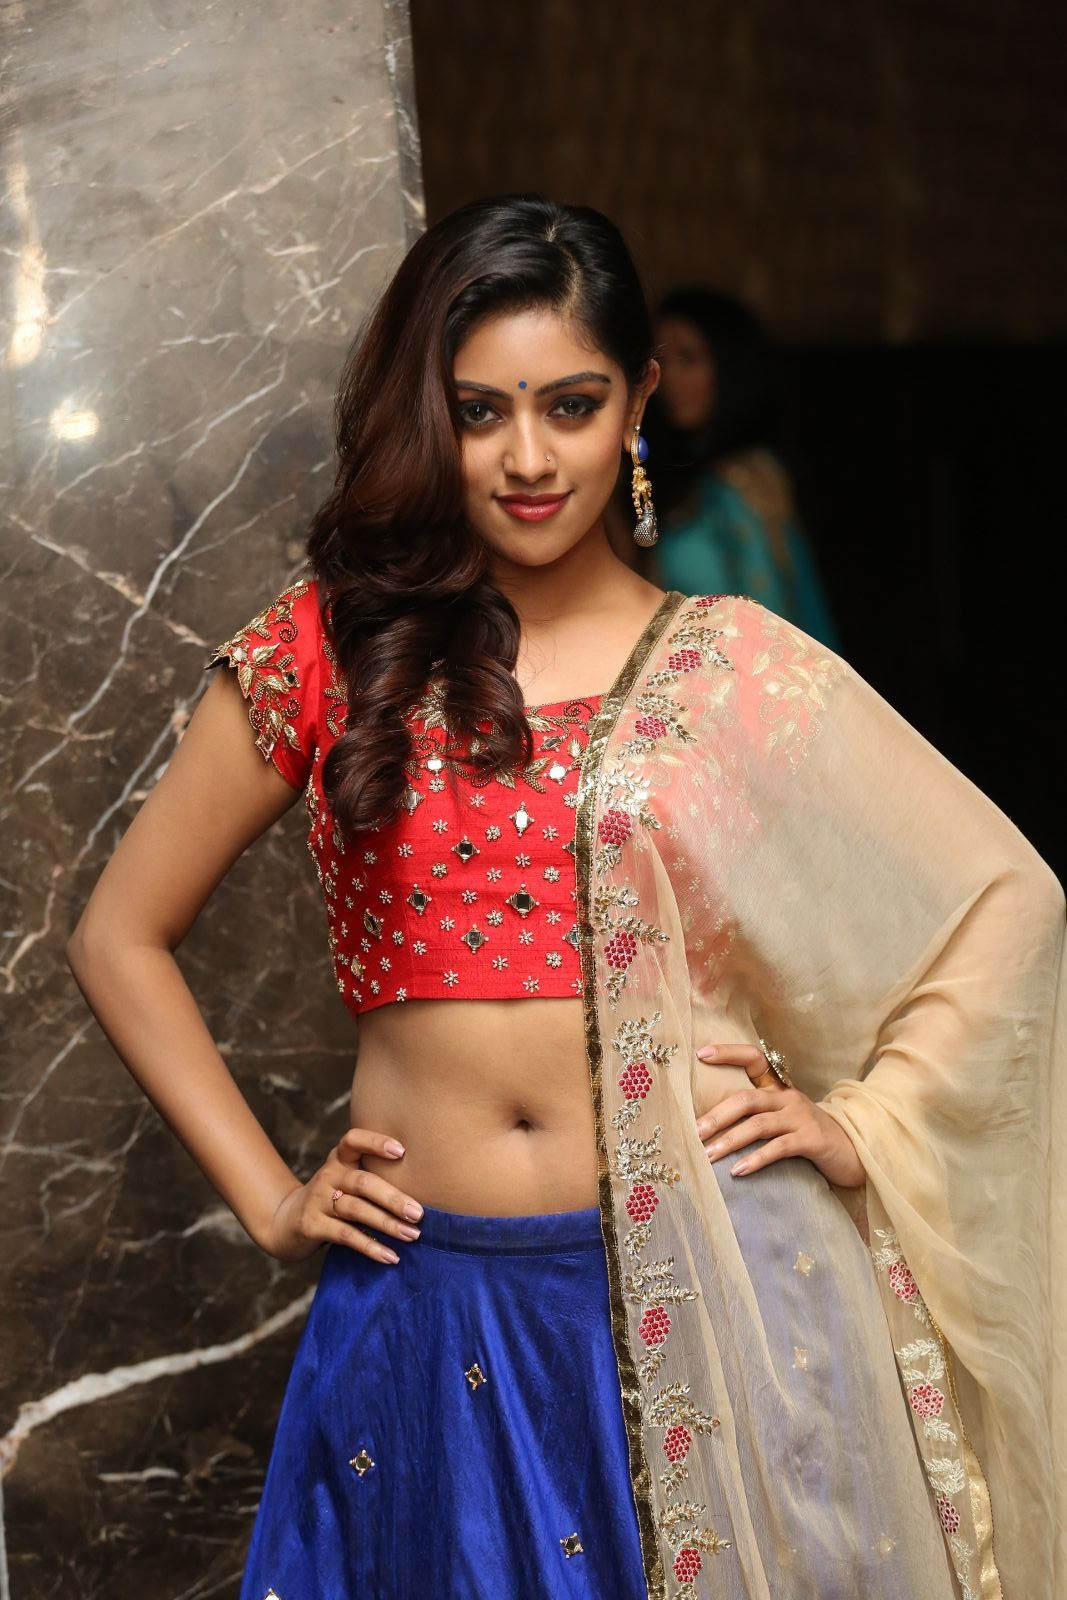 Anu Emmanuel Is An Indian Film Actress From Usa She Made Her Acting Debut As A Child Artist In The Malayalam Film Swapna Sanchari